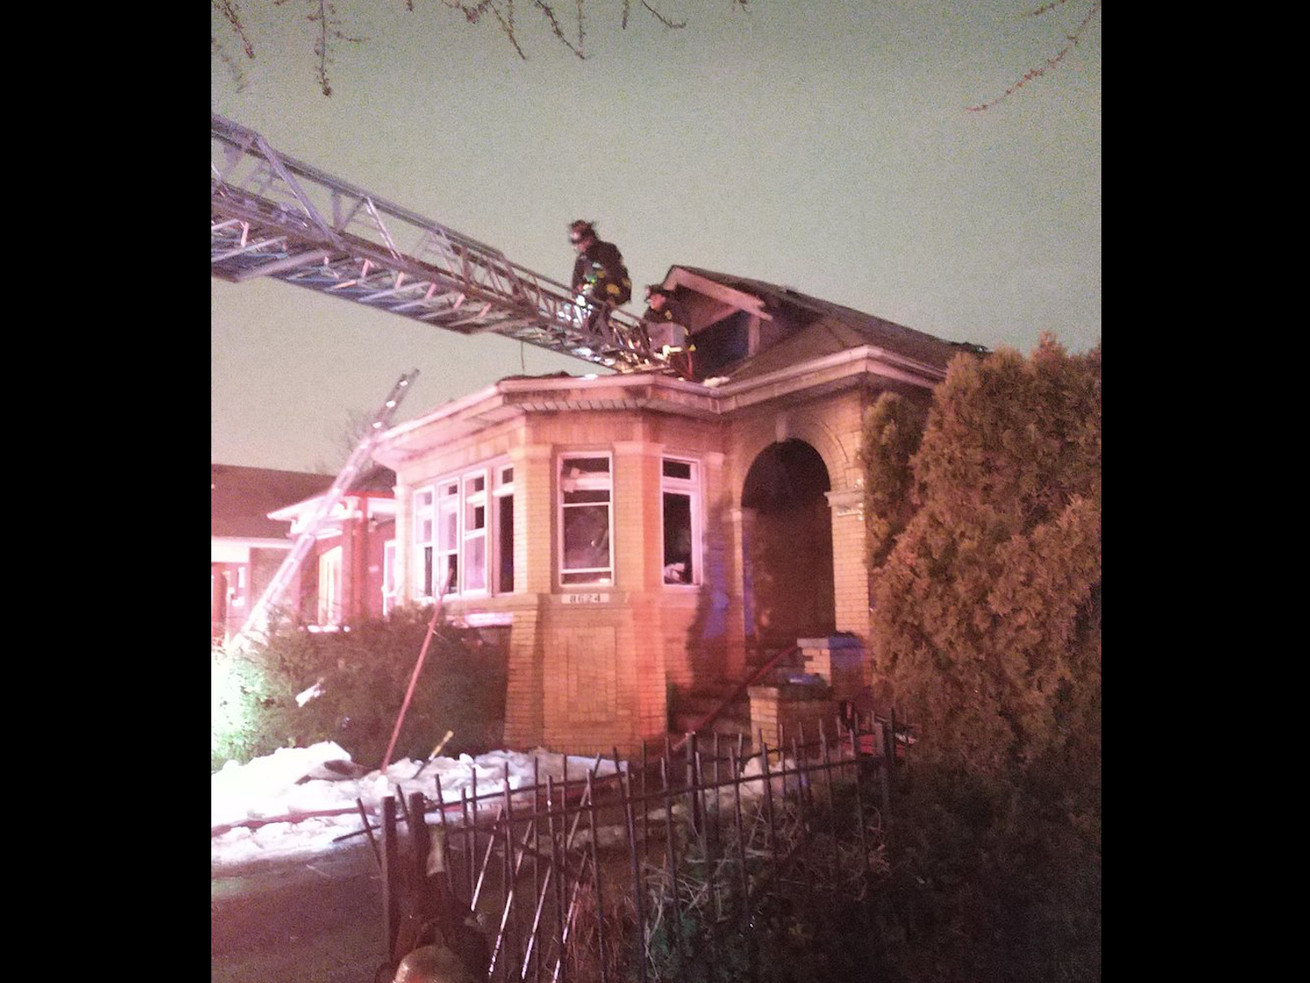 A fire broke out in a home Feb. 28, 2021 in the 8600 block of South Hermitage Avenue in Gresham.Chicago Fire Department